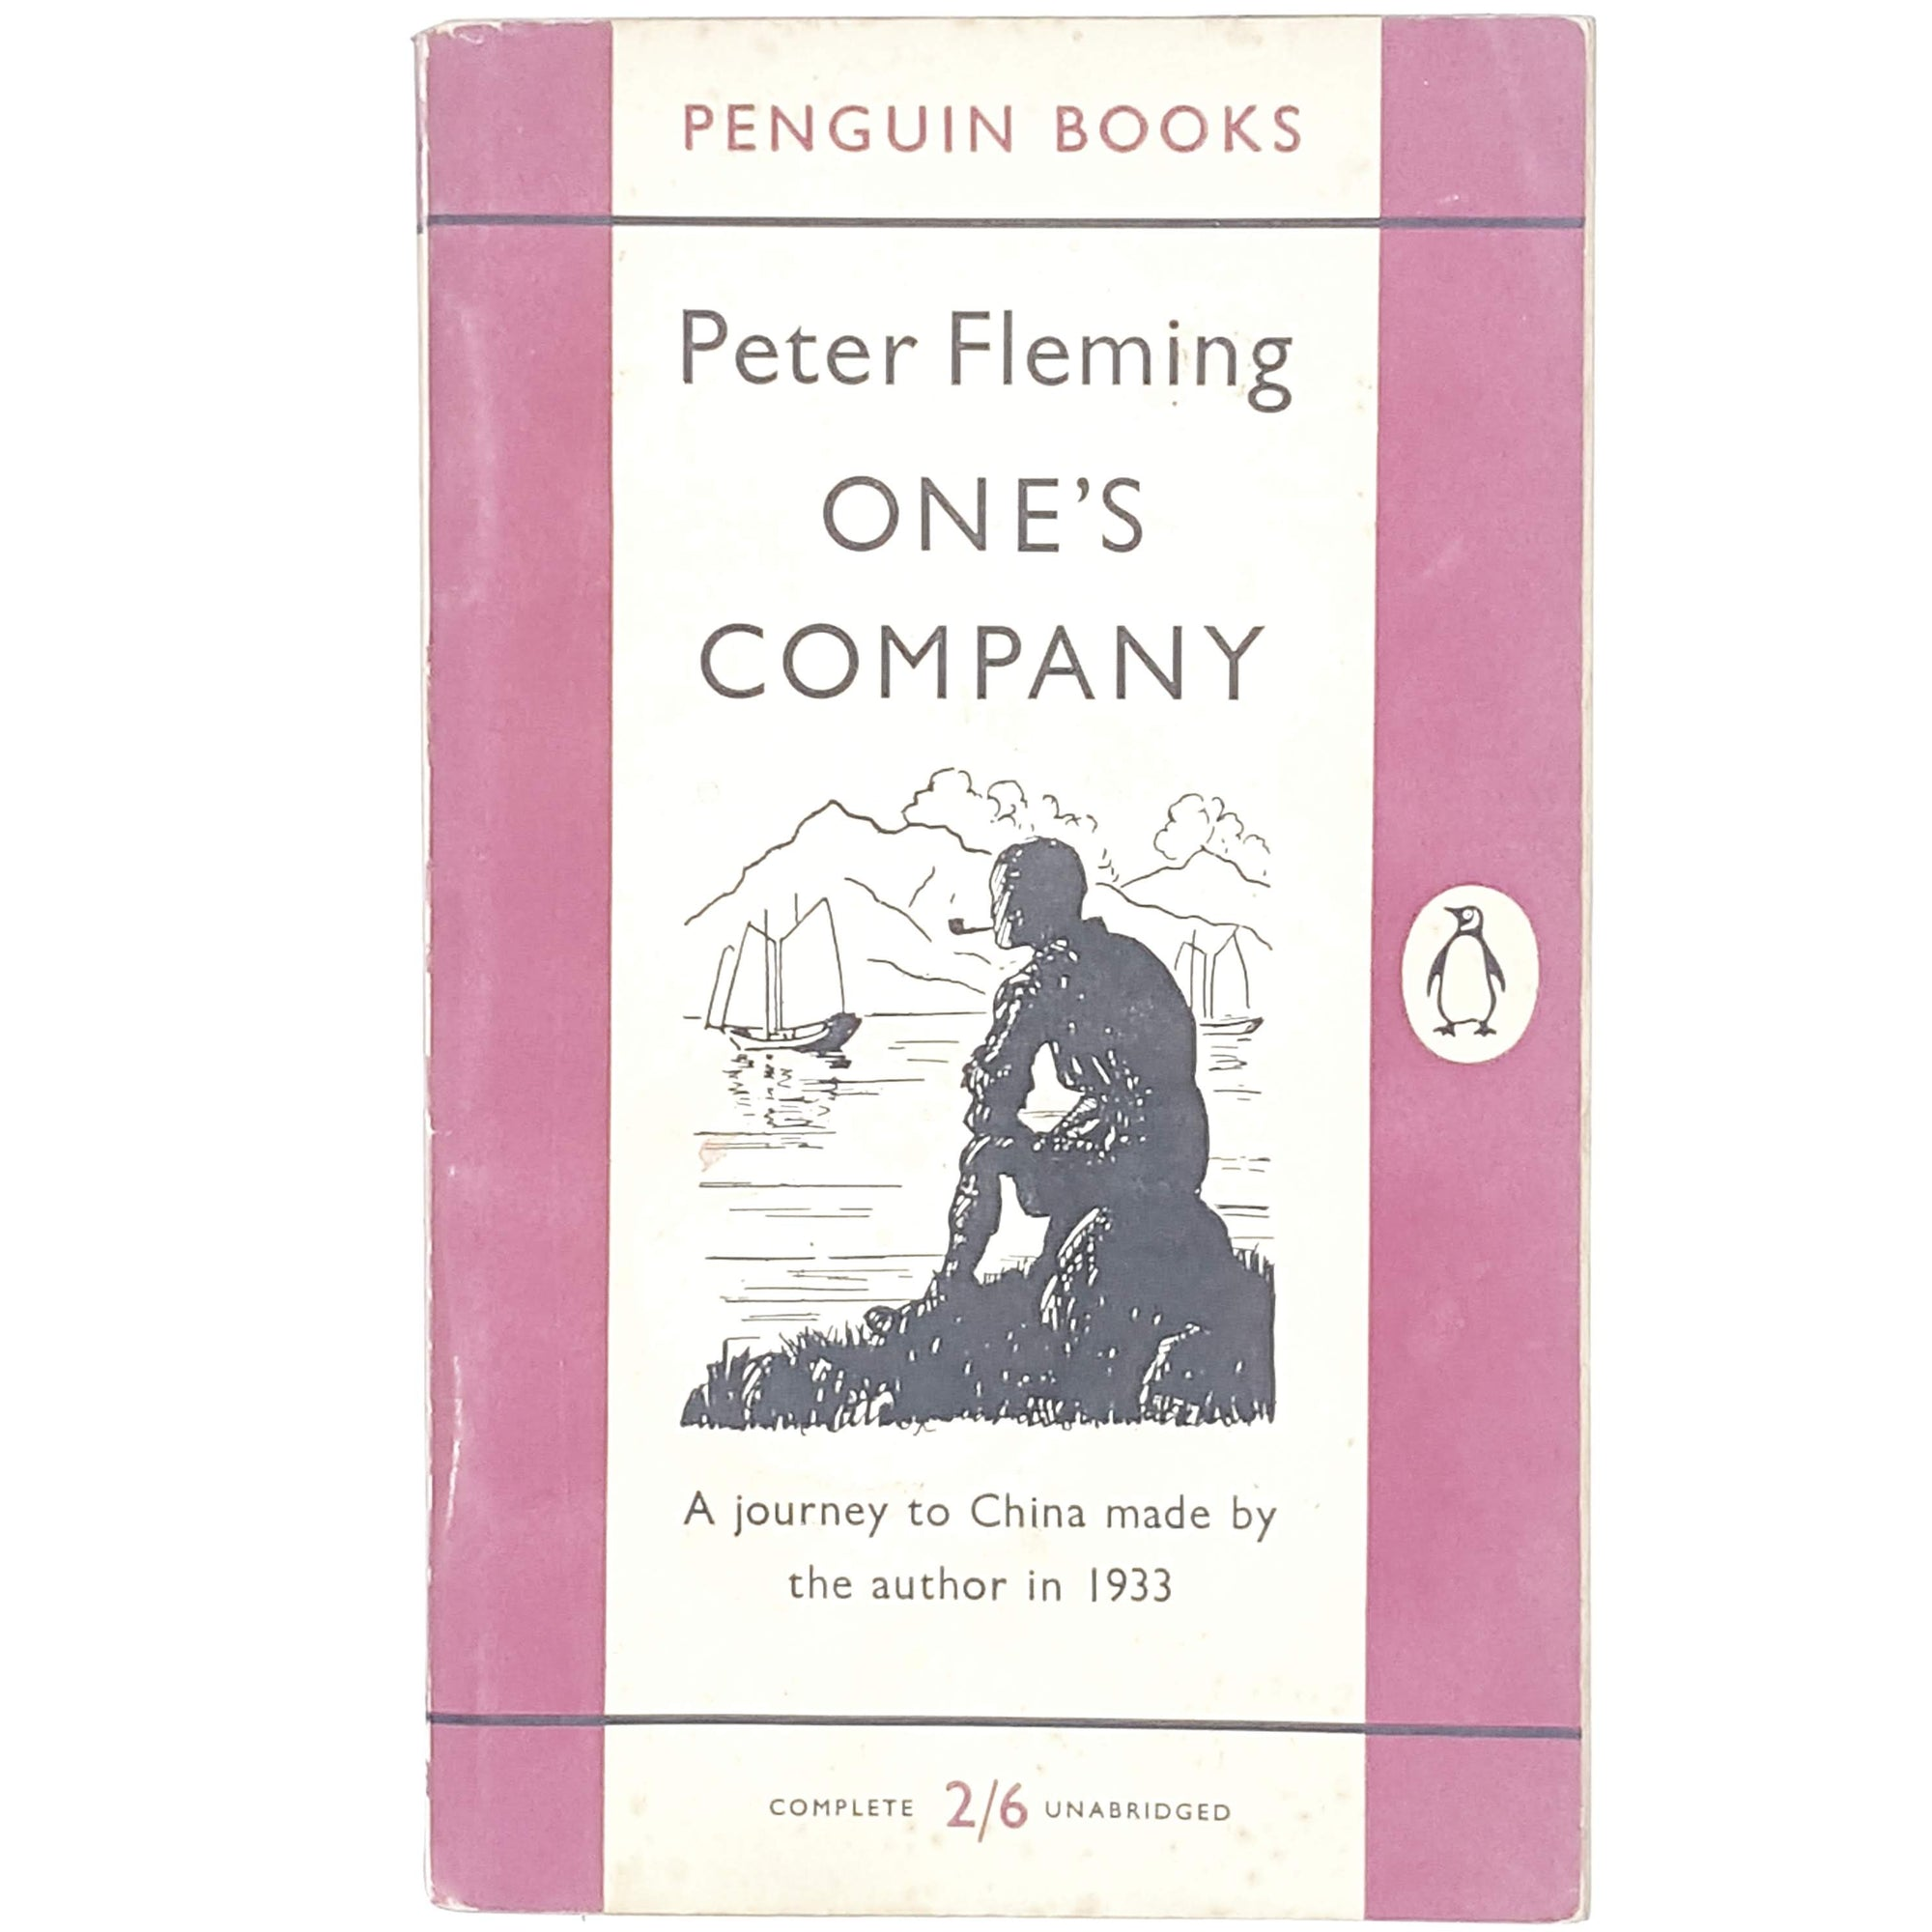 pink-peter-fleming-vintage-penguin-country-library-book